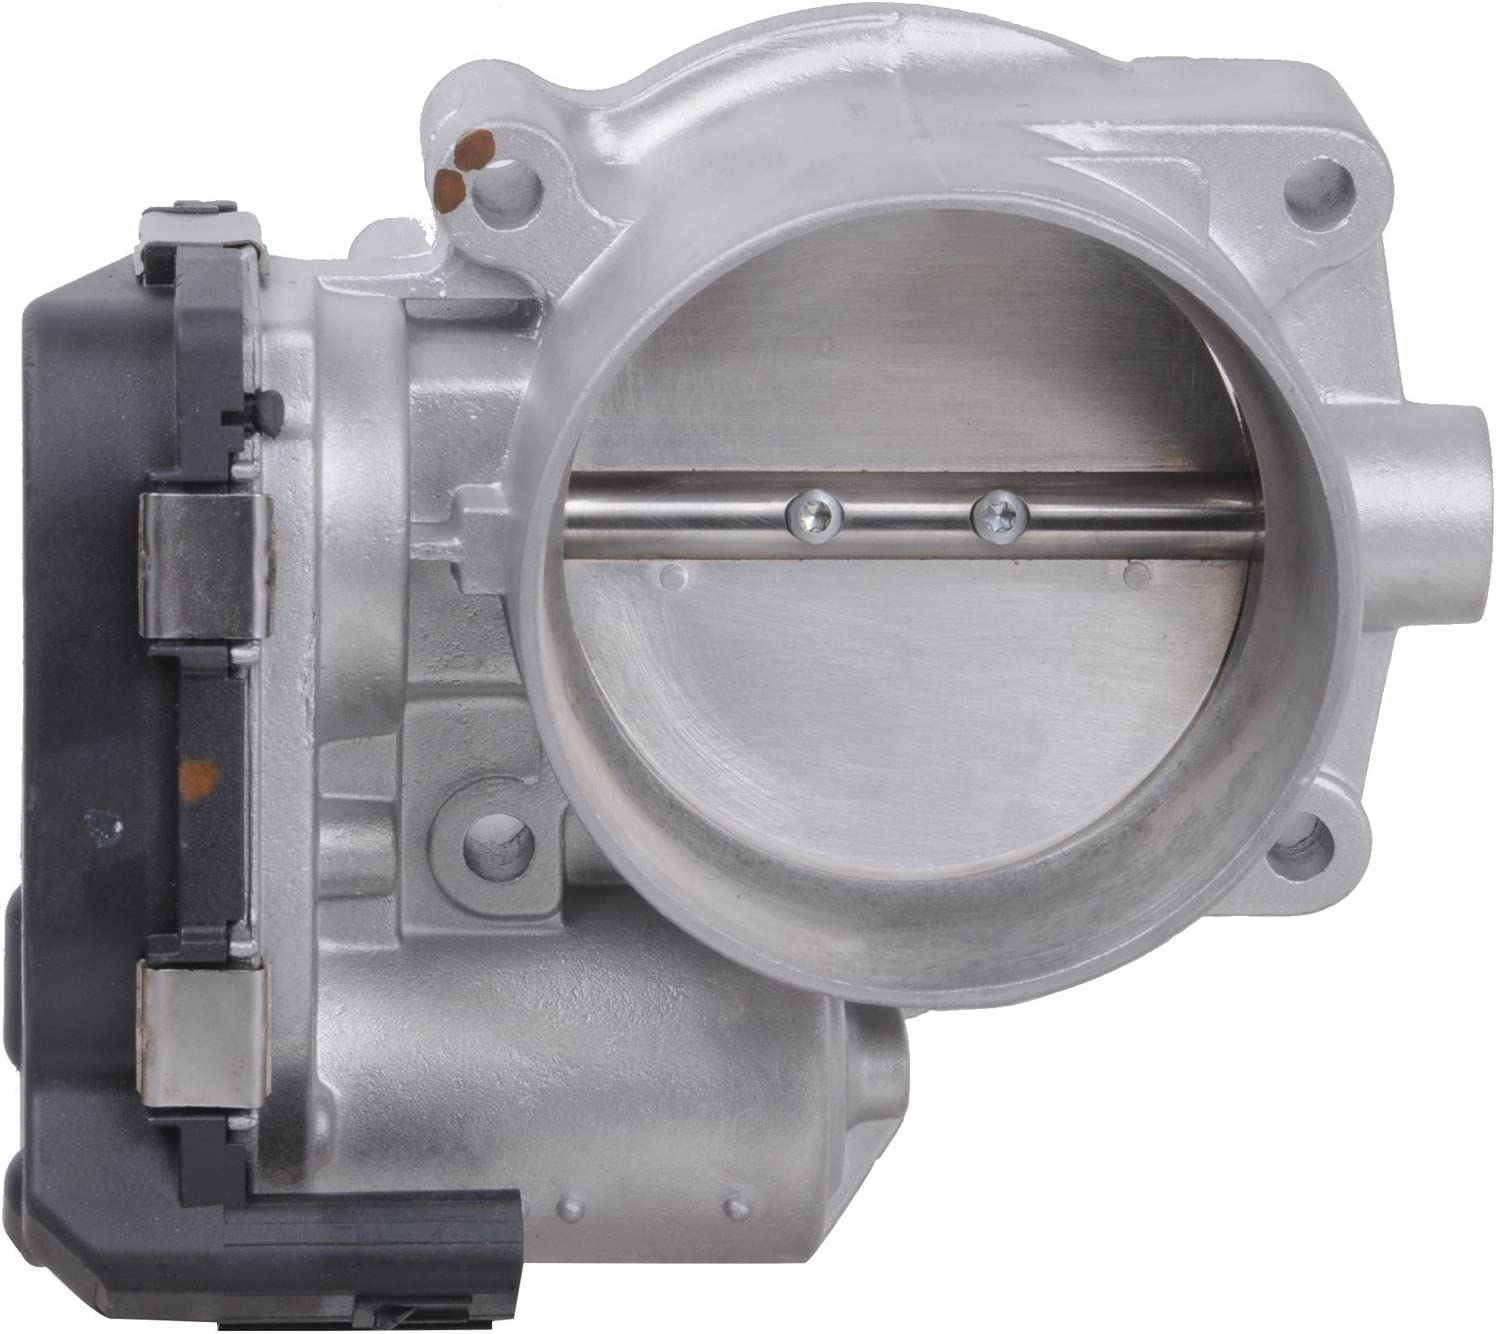 B077H3FS9G A1 Cardone 67-6028 Remanufactured Throttle Body 71pMoMpBRGL.SL1500_